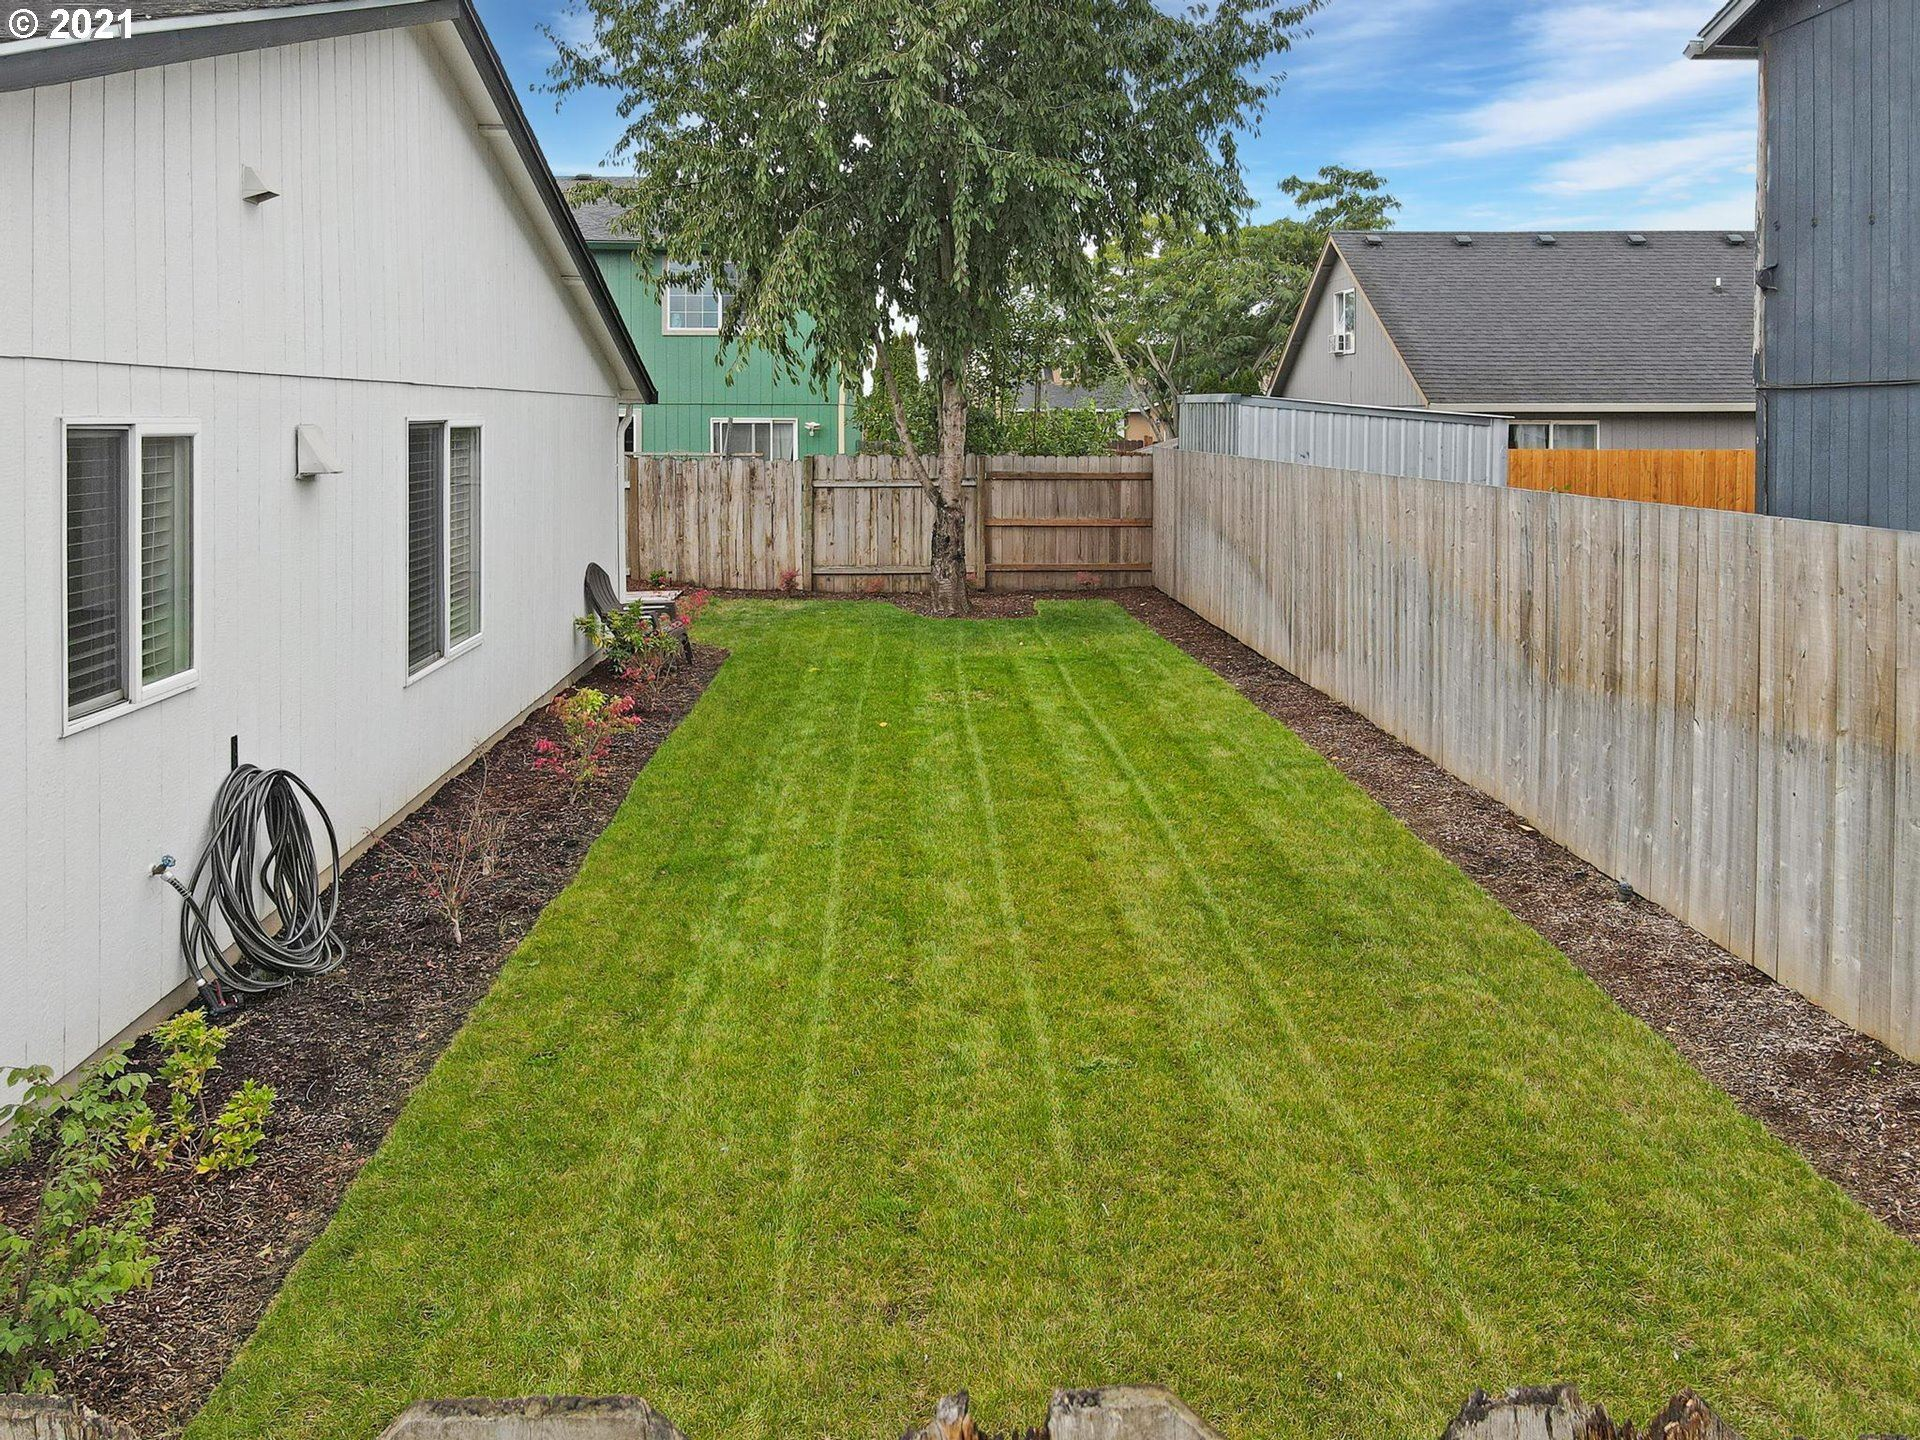 Photo of 184 E HEMLOCK DR, Gervais, OR 97026 (MLS # 21605534)